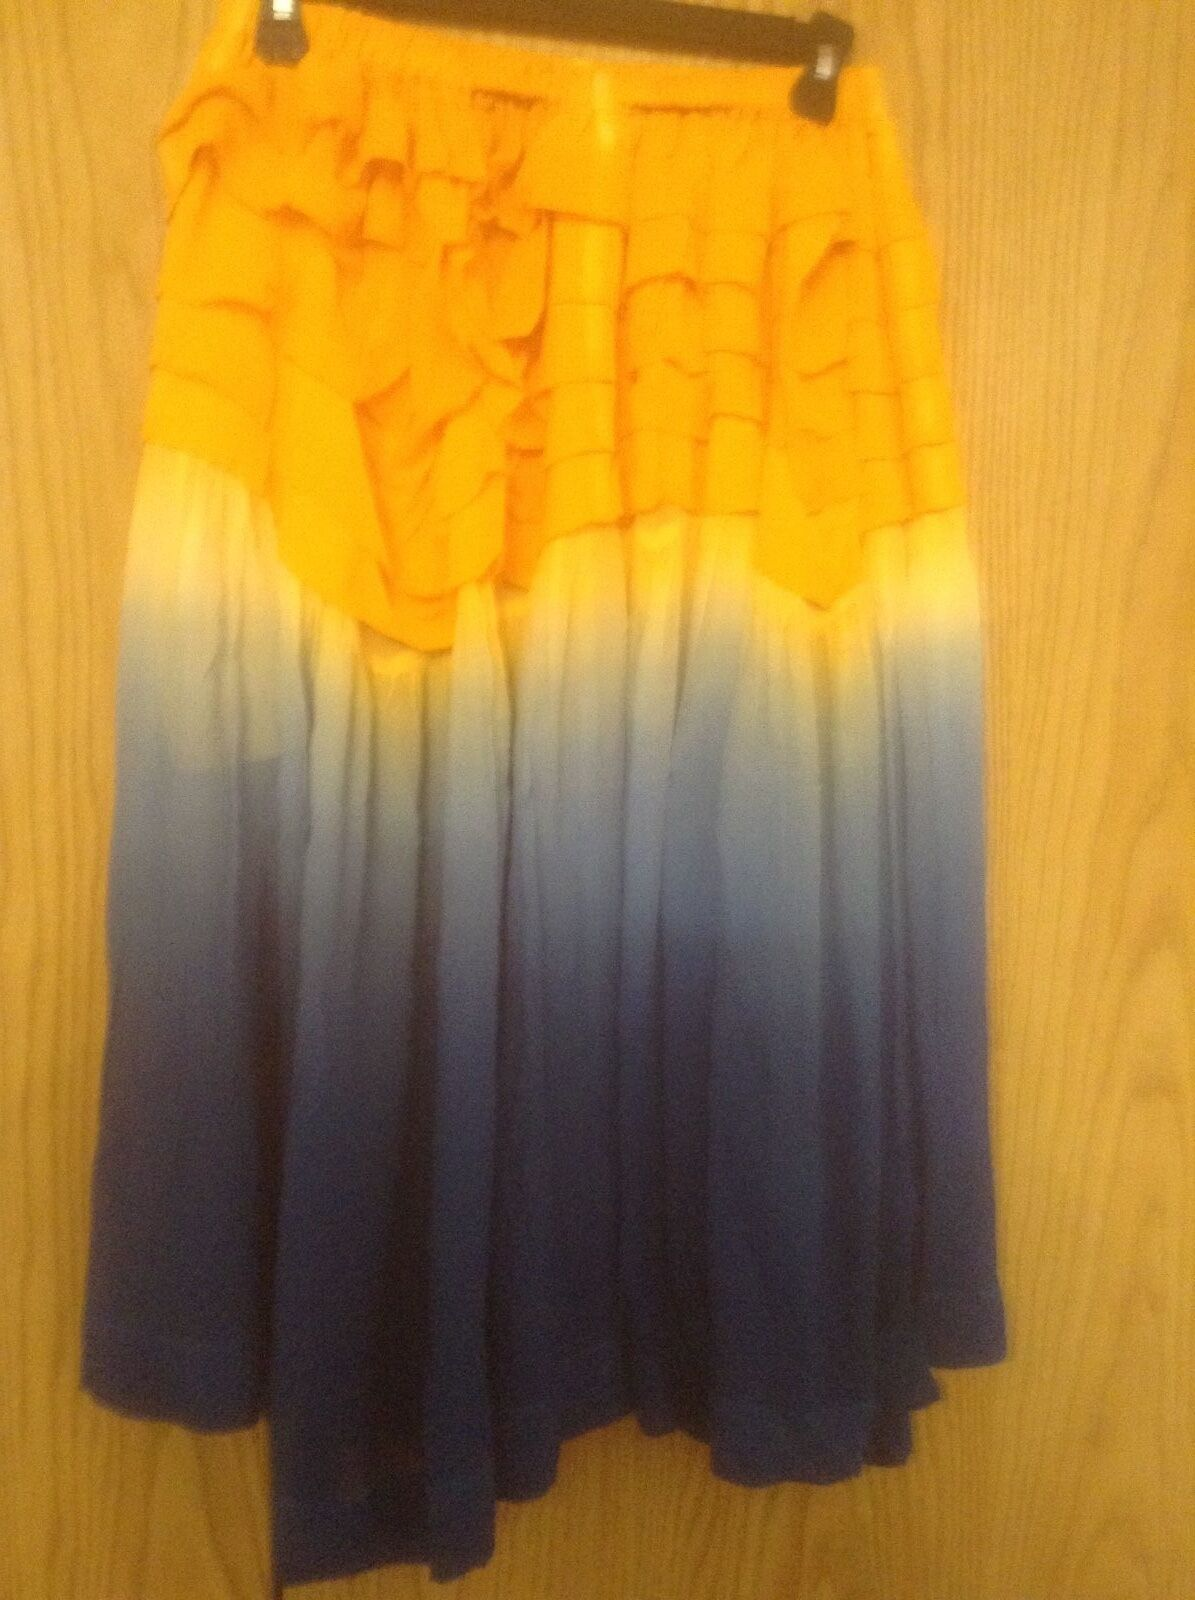 NWOT LIMI feu SKIRT FLARE RUCHED 100% SILK SIZE  SMALL COLOR YELLOW blueE HUES